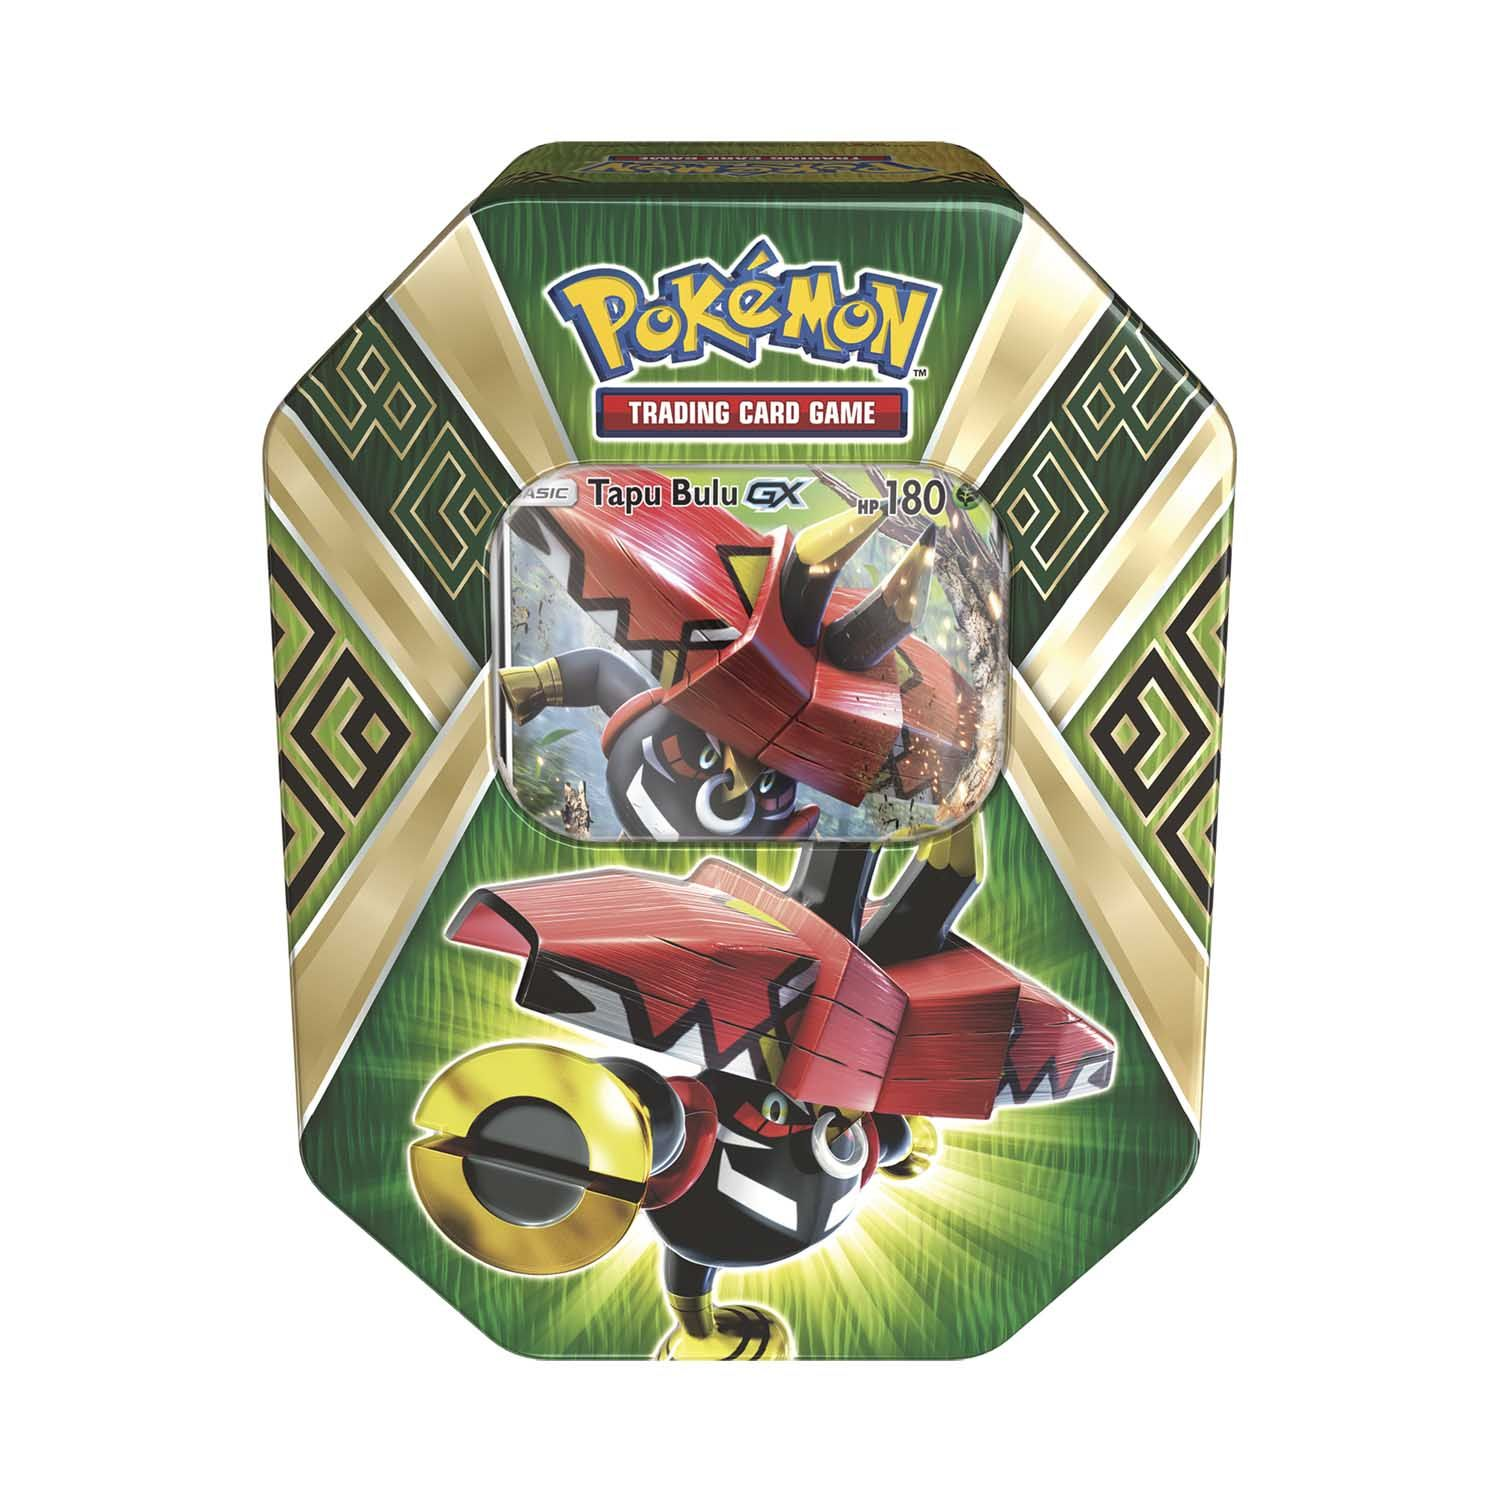 Pokemon Trading Card Game Island Guardians Tin With Tapu Bulu Gx Hunters Online Pokemon Trading Card Game Pokemon Trading Card Pokemon